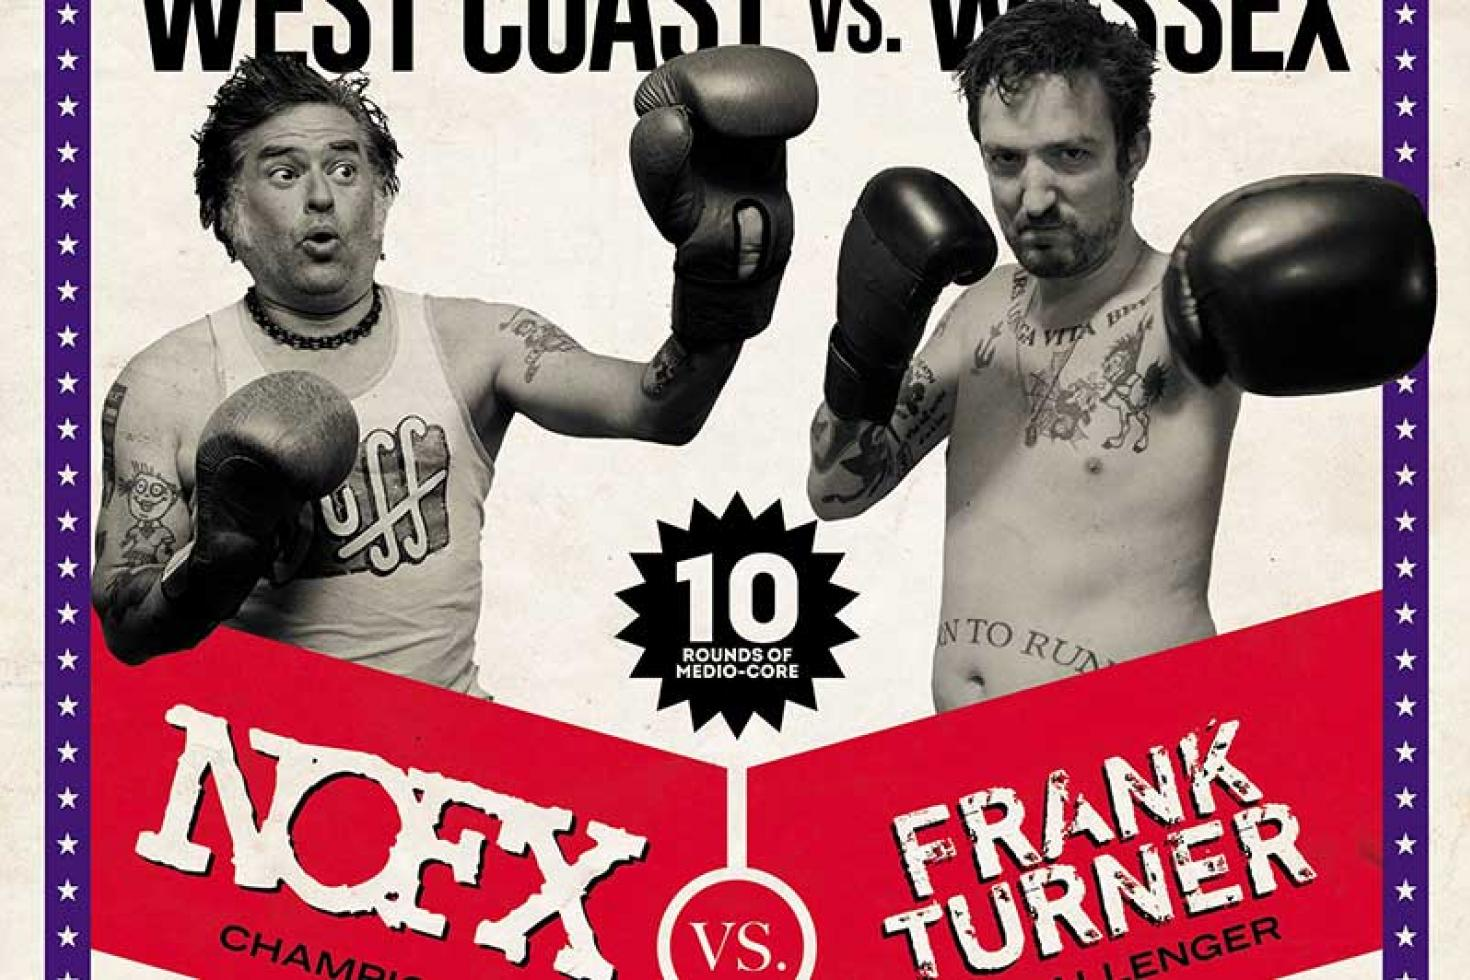 Frank Turner transforms NOFX's 'Falling in Love' with new single